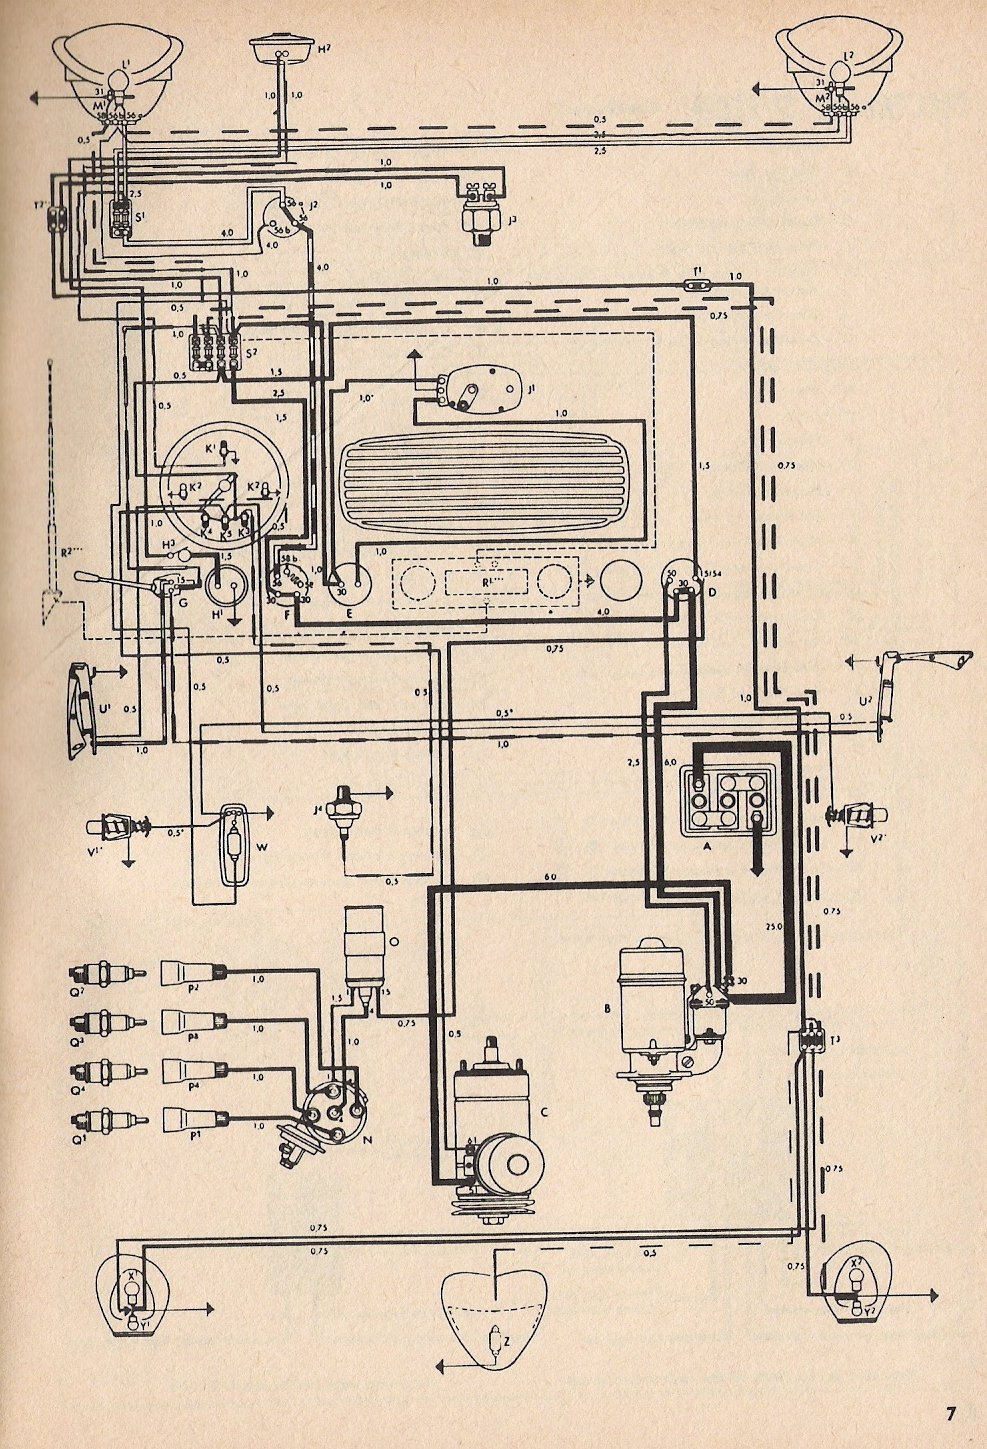 thesamba com type 1 wiring diagrams rh thesamba com 72 VW Generator Wiring Diagram 1971 Super Beetle Wiring Diagram